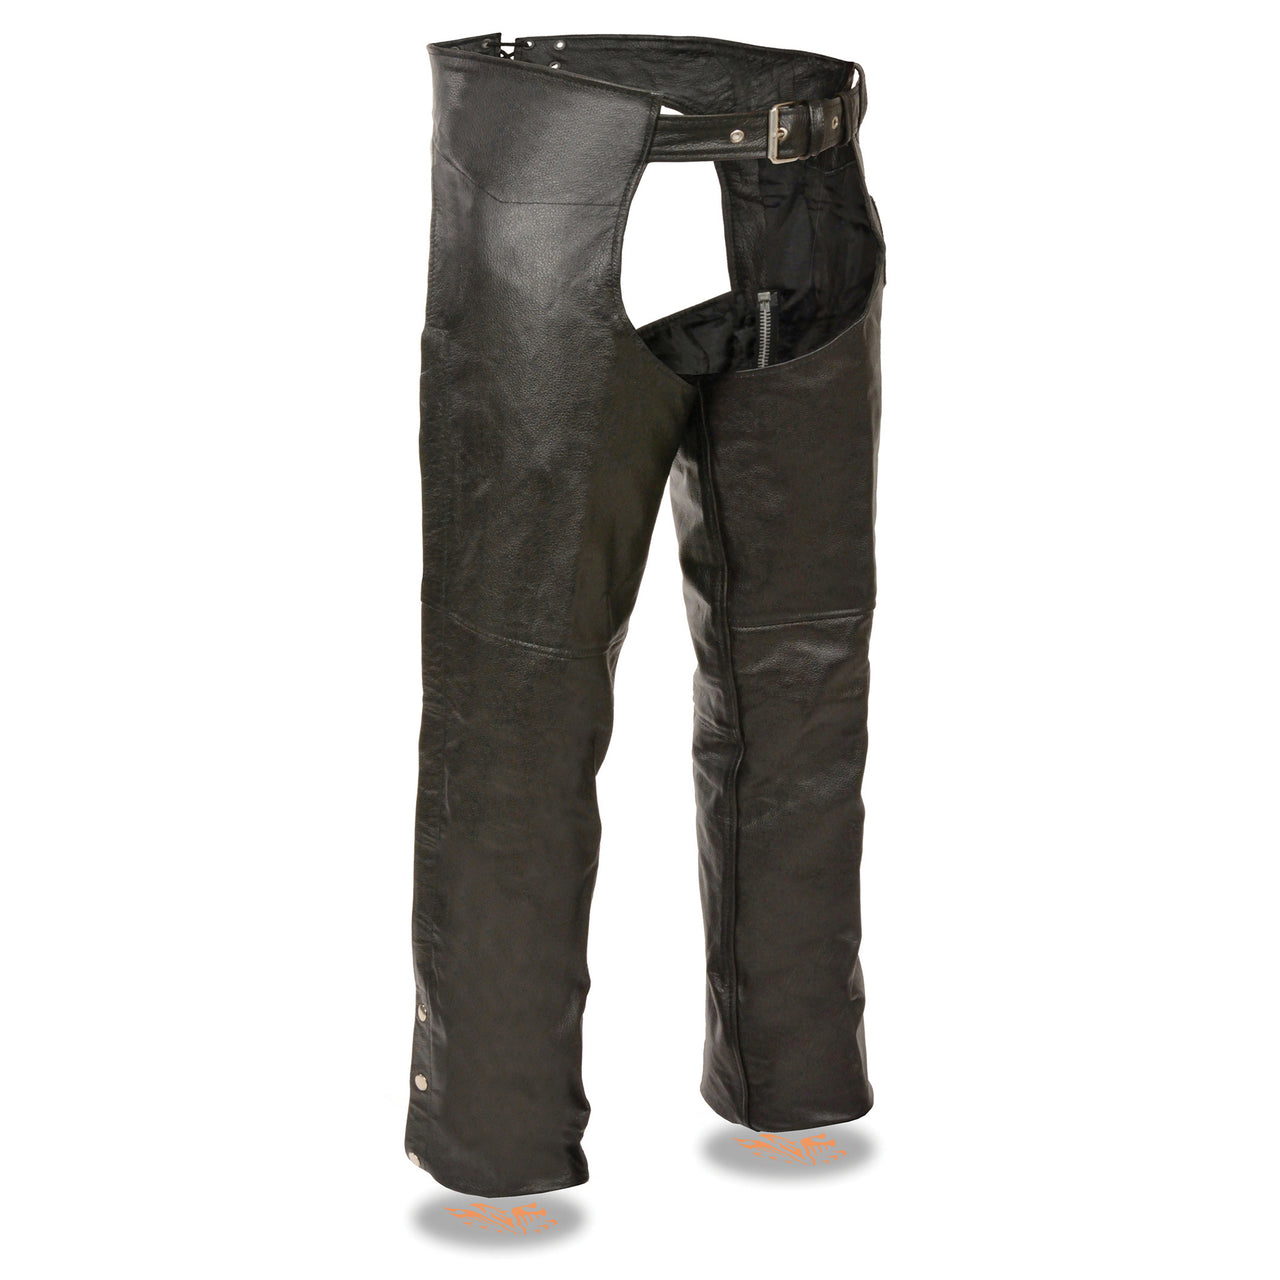 Men's Classic Chap w/ Coin Pocket - HighwayLeather